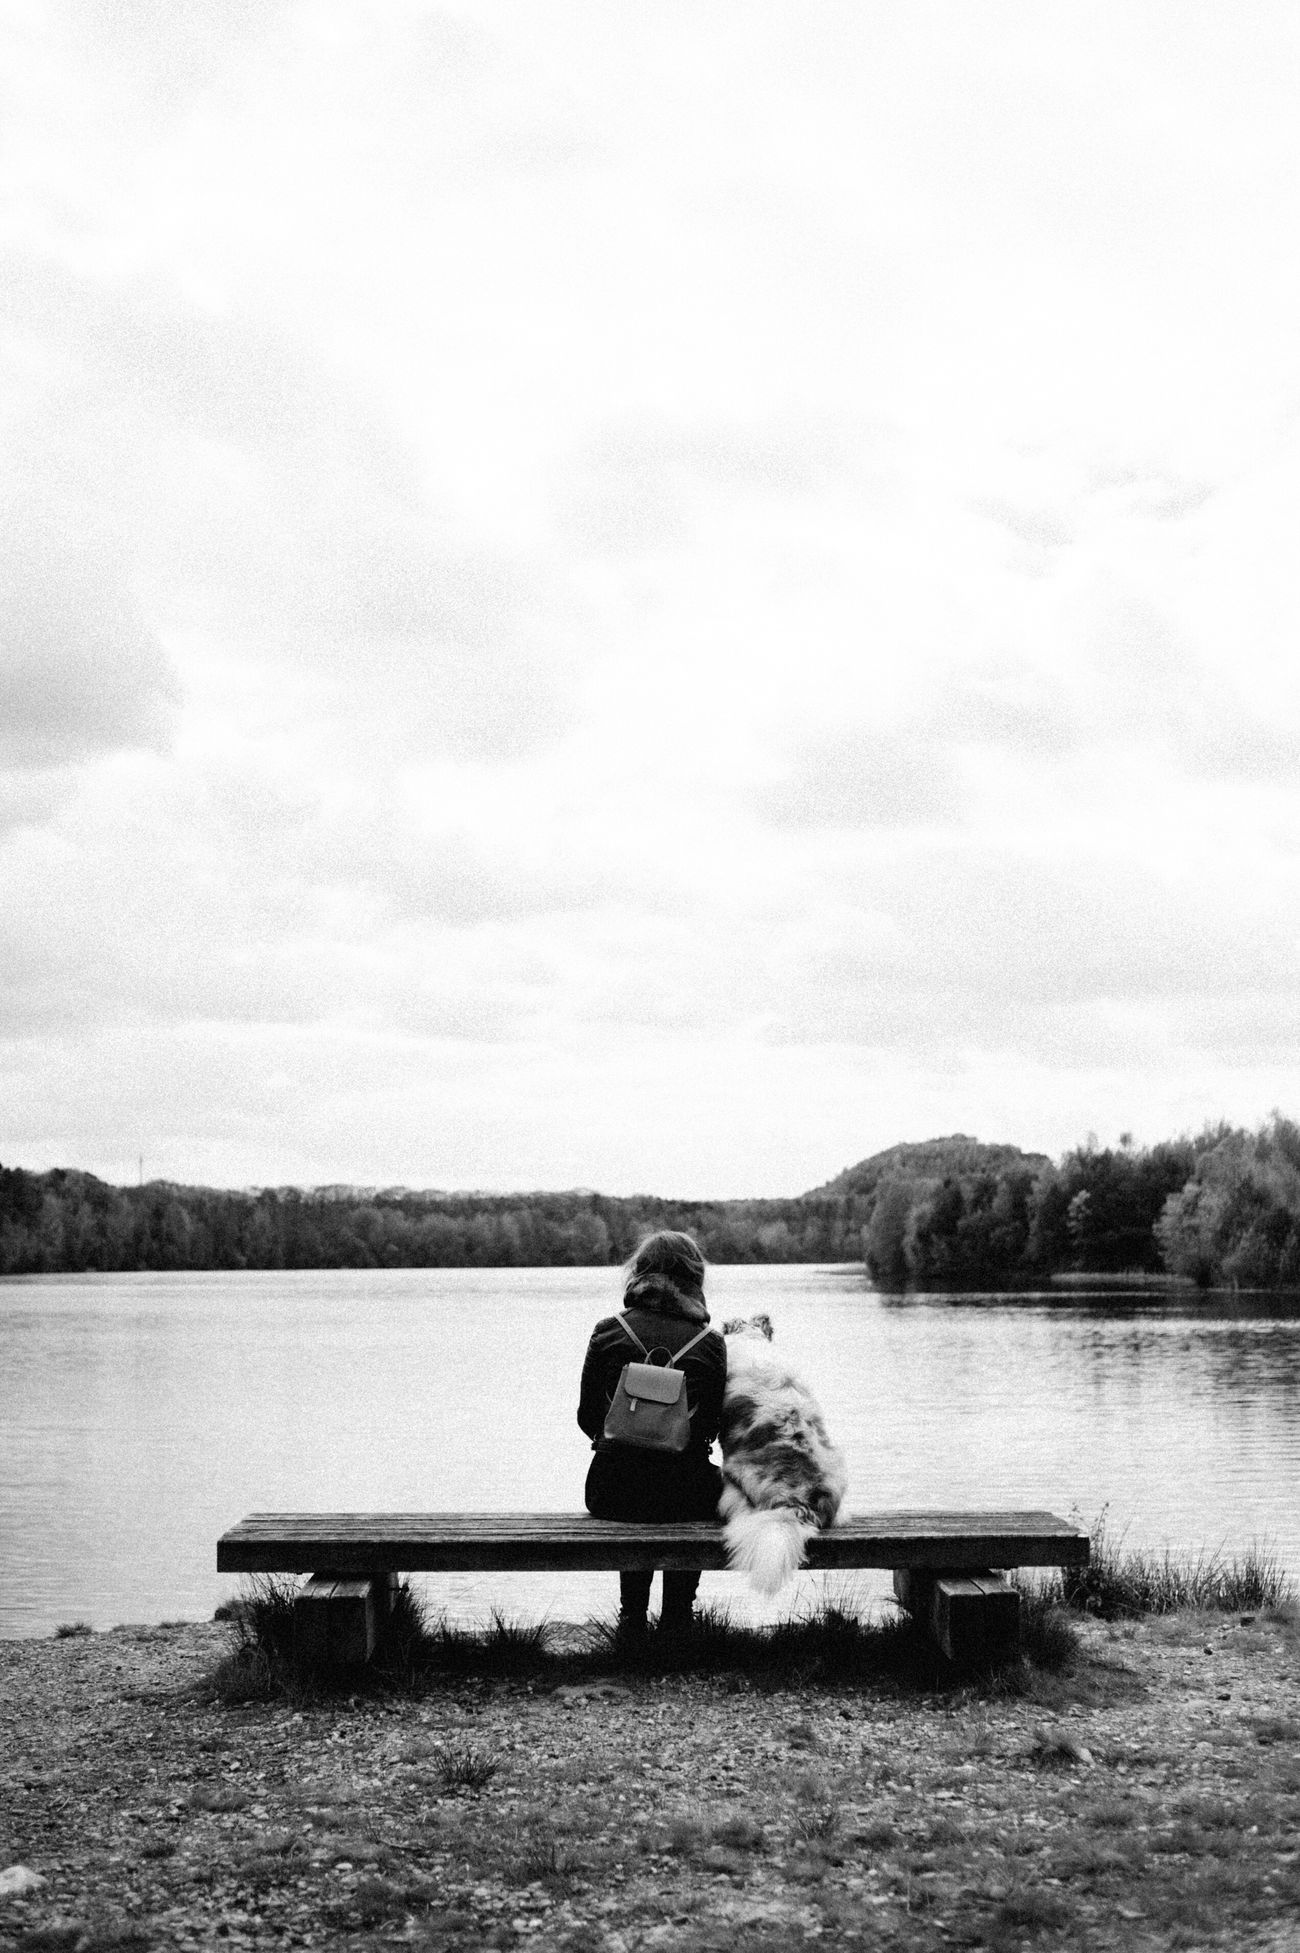 The Calm Photography Movement Water Lake Sitting Full Length Tranquility Nature Cloud - Sky One Person Sky Tranquil Scene Relaxation Leisure Activity Day Outdoors Real People Beauty In Nature Men Young Adult People TCPM The Secret Spaces Portra 160 Eye4photography  Blackandwhite TCPM EyeEmNewHere The Great Outdoors - 2017 EyeEm Awards The Portraitist - 2017 EyeEm Awards Place Of Heart